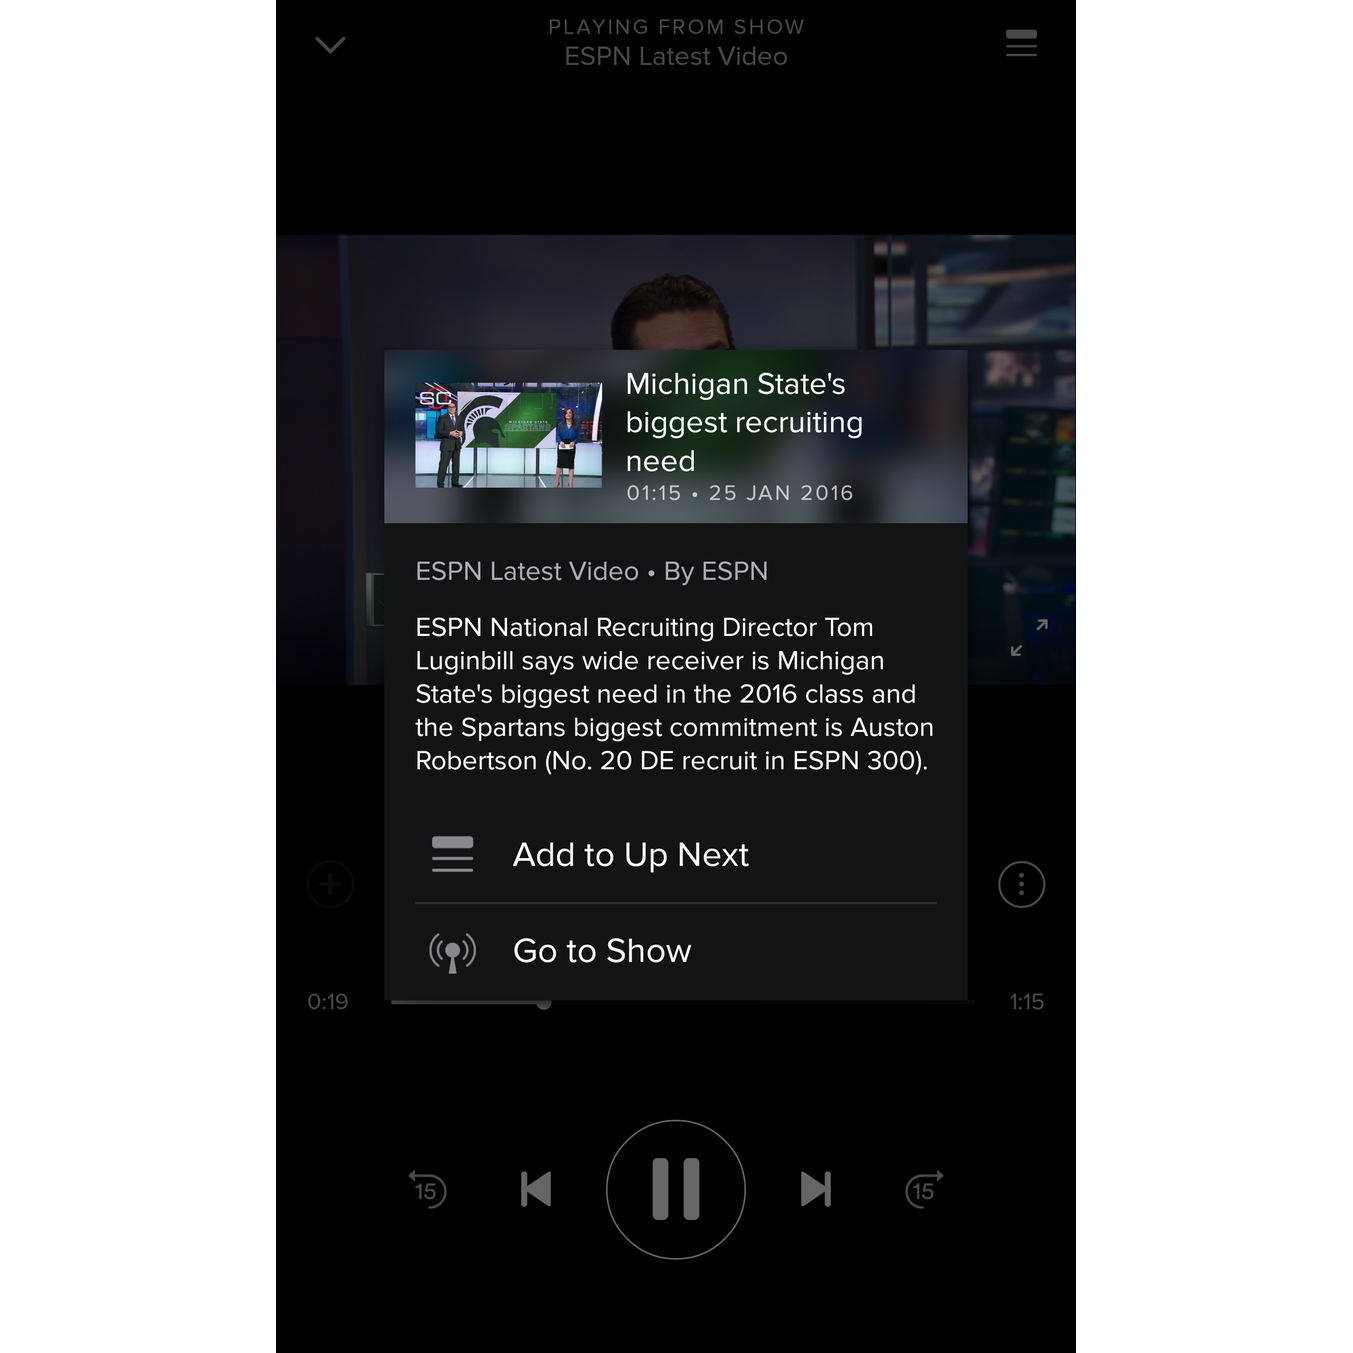 Com Spotify voce ja pode assistir videos no Android e iOS em streaming 1